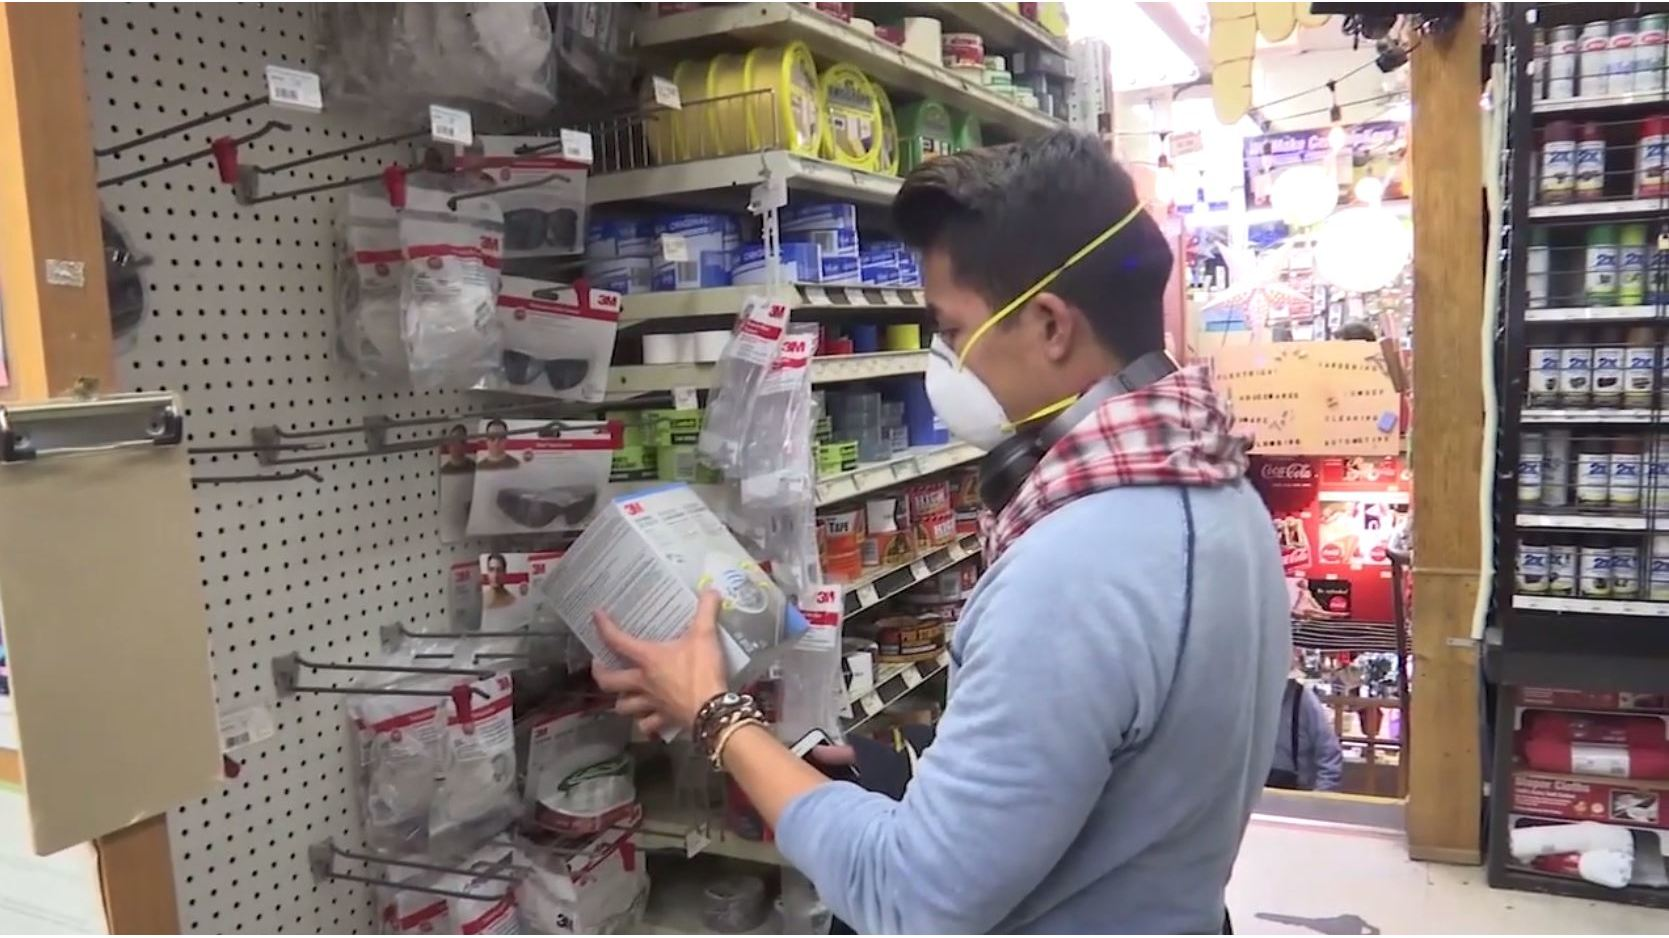 High demand for face masks amid bad air quality in California Bay Area